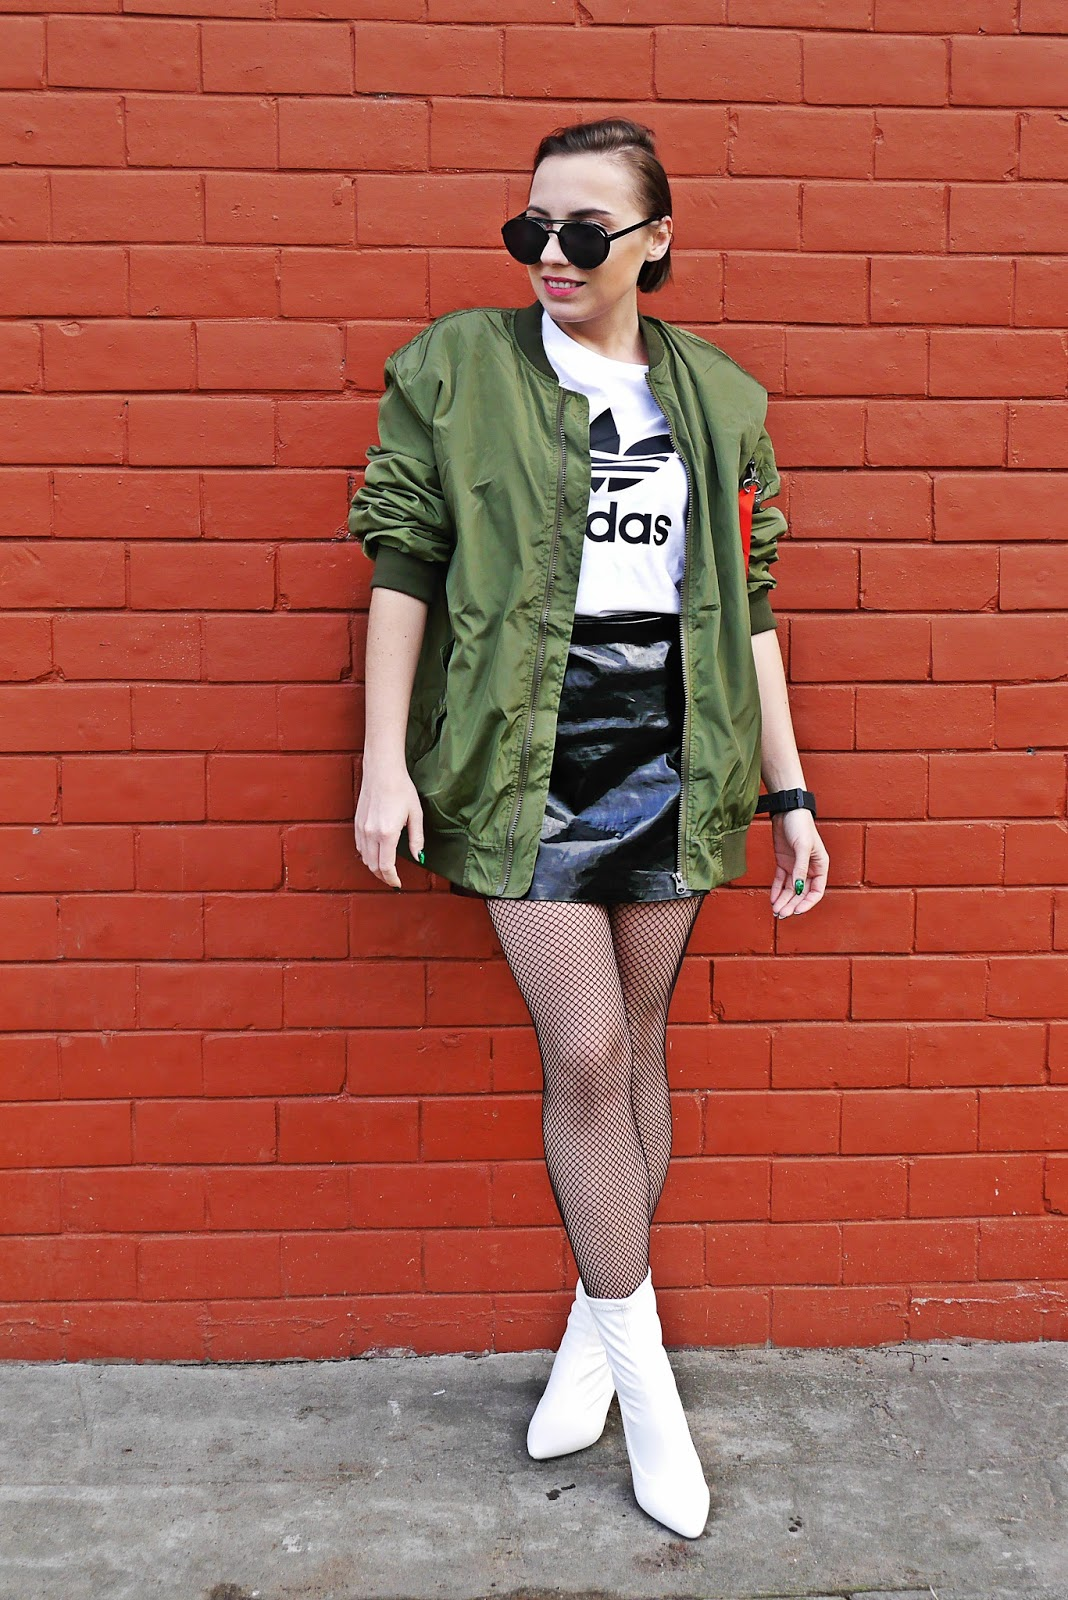 5_oversize_green_bomber_jacet_white_boots_adidas_tshirt_karyn_blog_modowy_080318